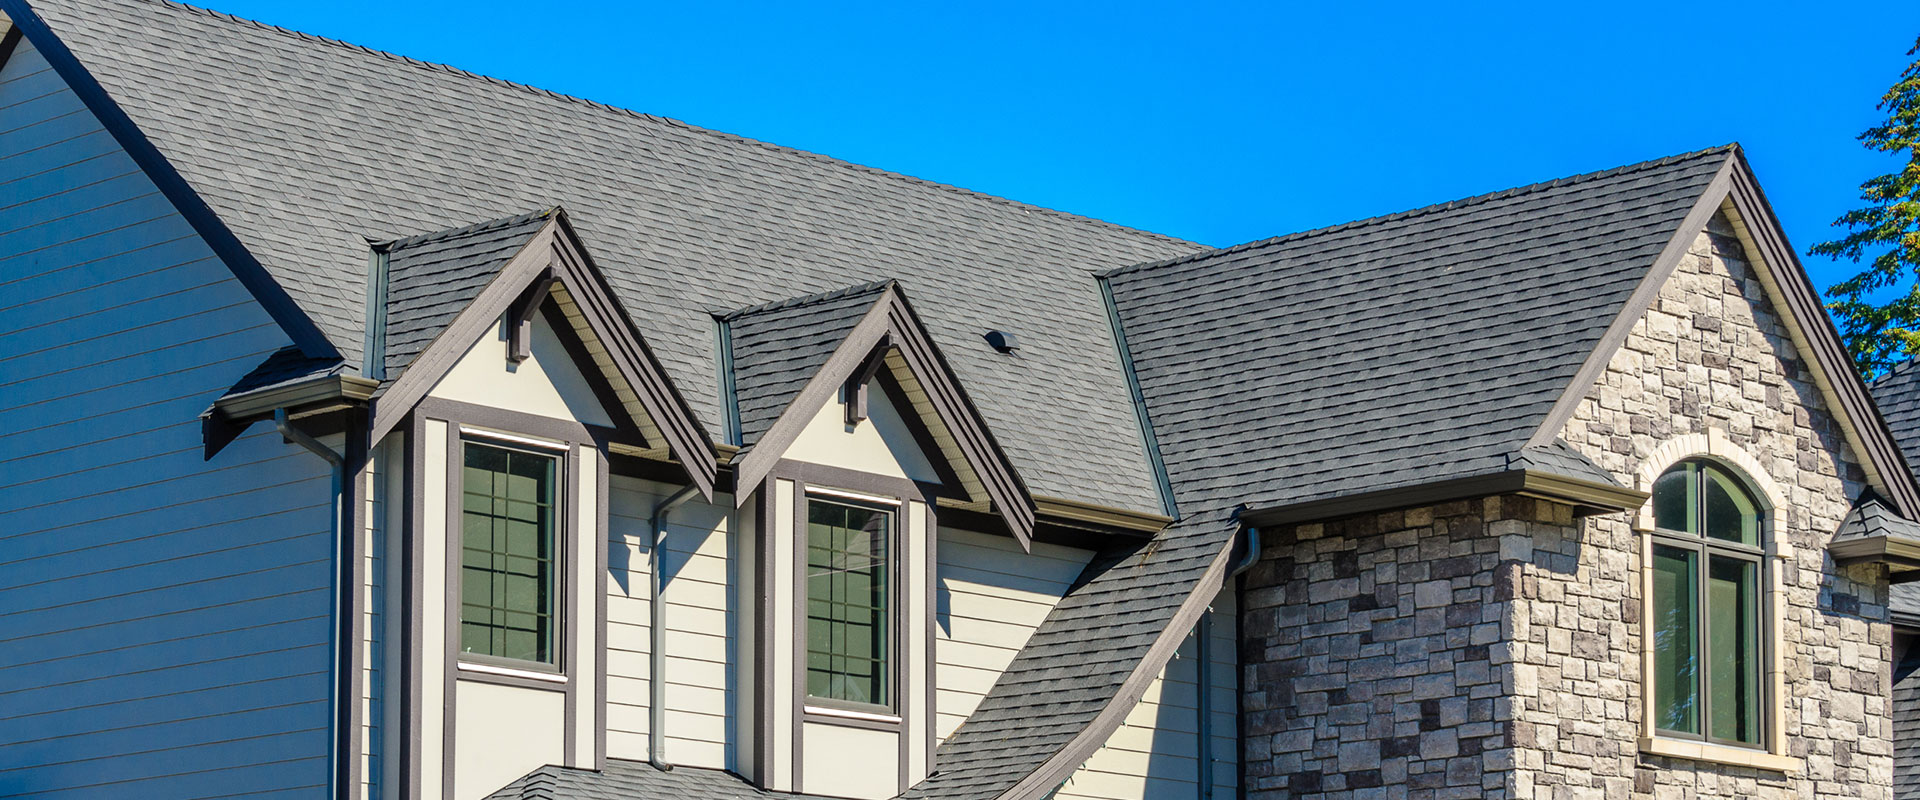 Roofing Contractor, Roofer, Roofing Construction: Fort Wayne